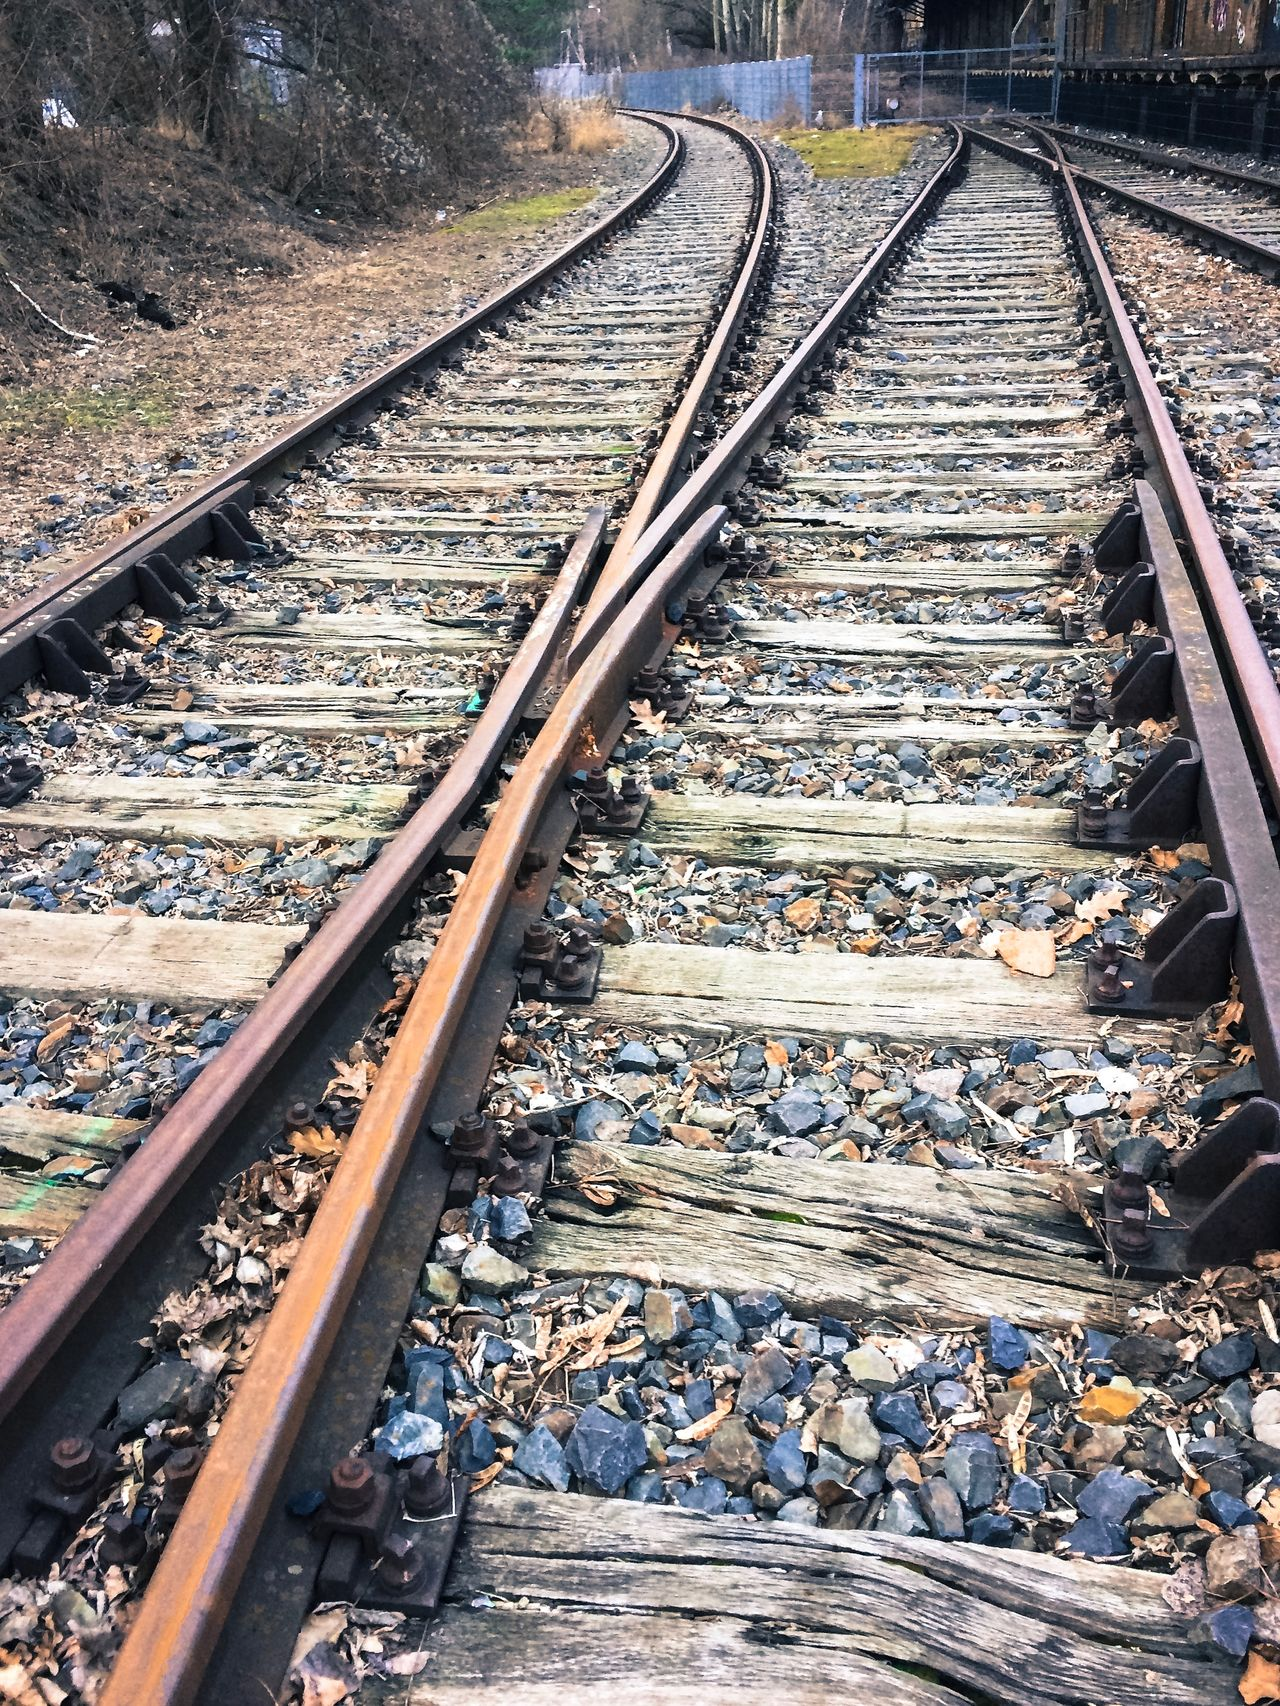 Two railway tracks go in different directions Berlin Day Diffrent Direction Future Goal Nature No People Nobody Outdoors Perspective Rail Transportation Railroad Tie Railroad Track Railway Track Retro Target Tracks Train Train Tracks Transportation Travel Which Way To Go?